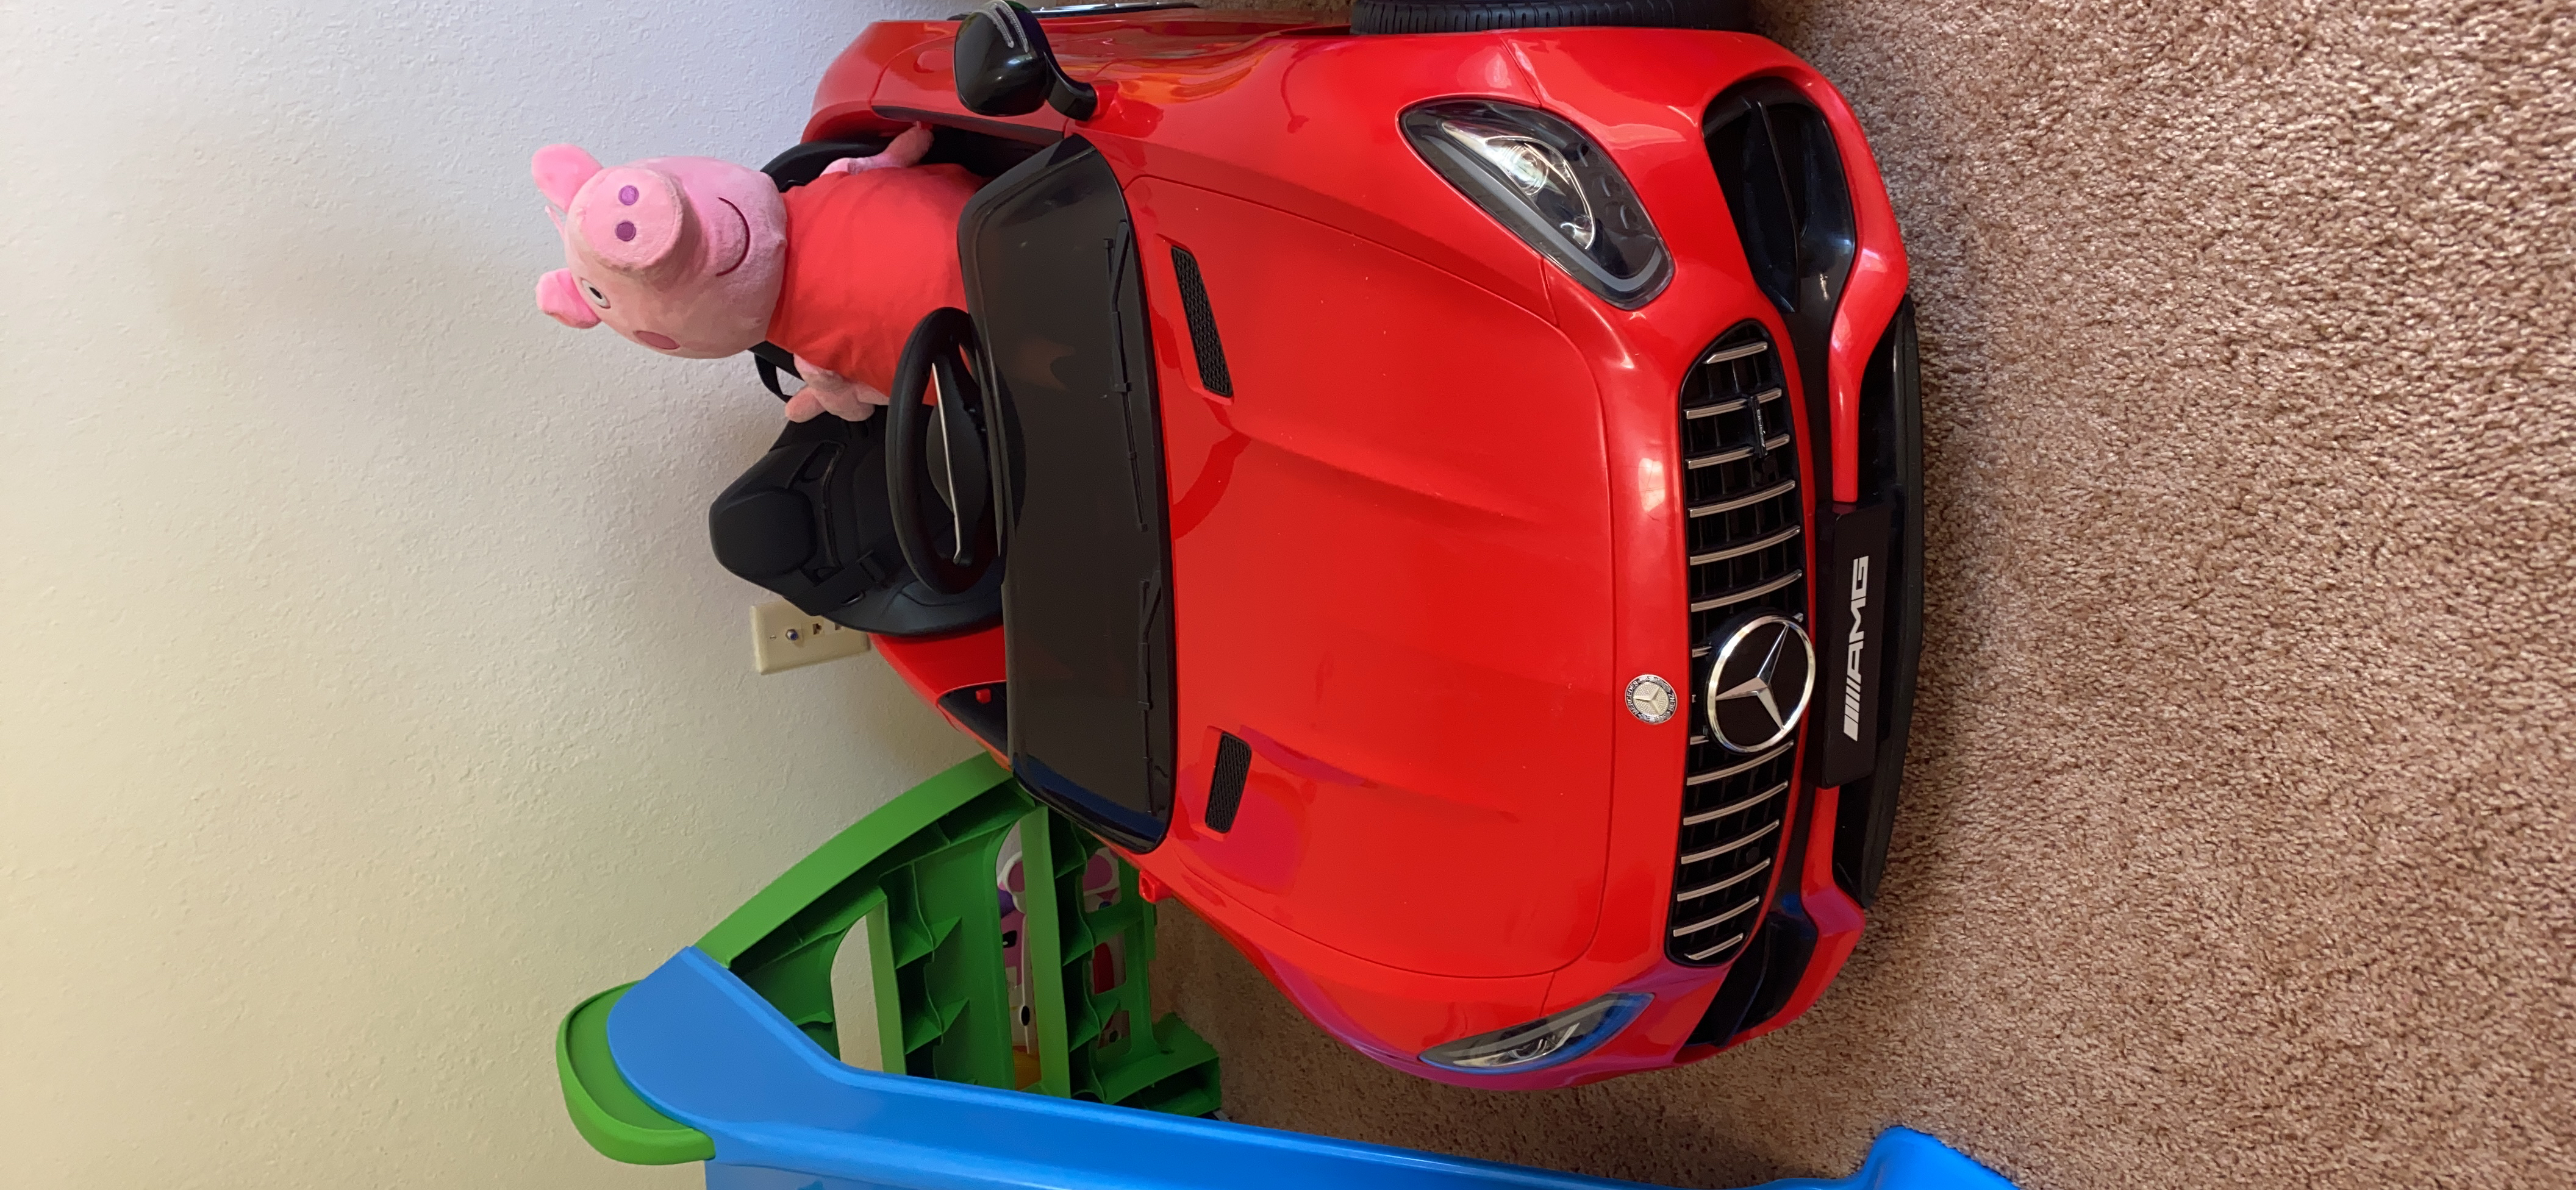 12V Mercedes-Maybach Kids Ride on Car with Remote Conrtol, Red photo review